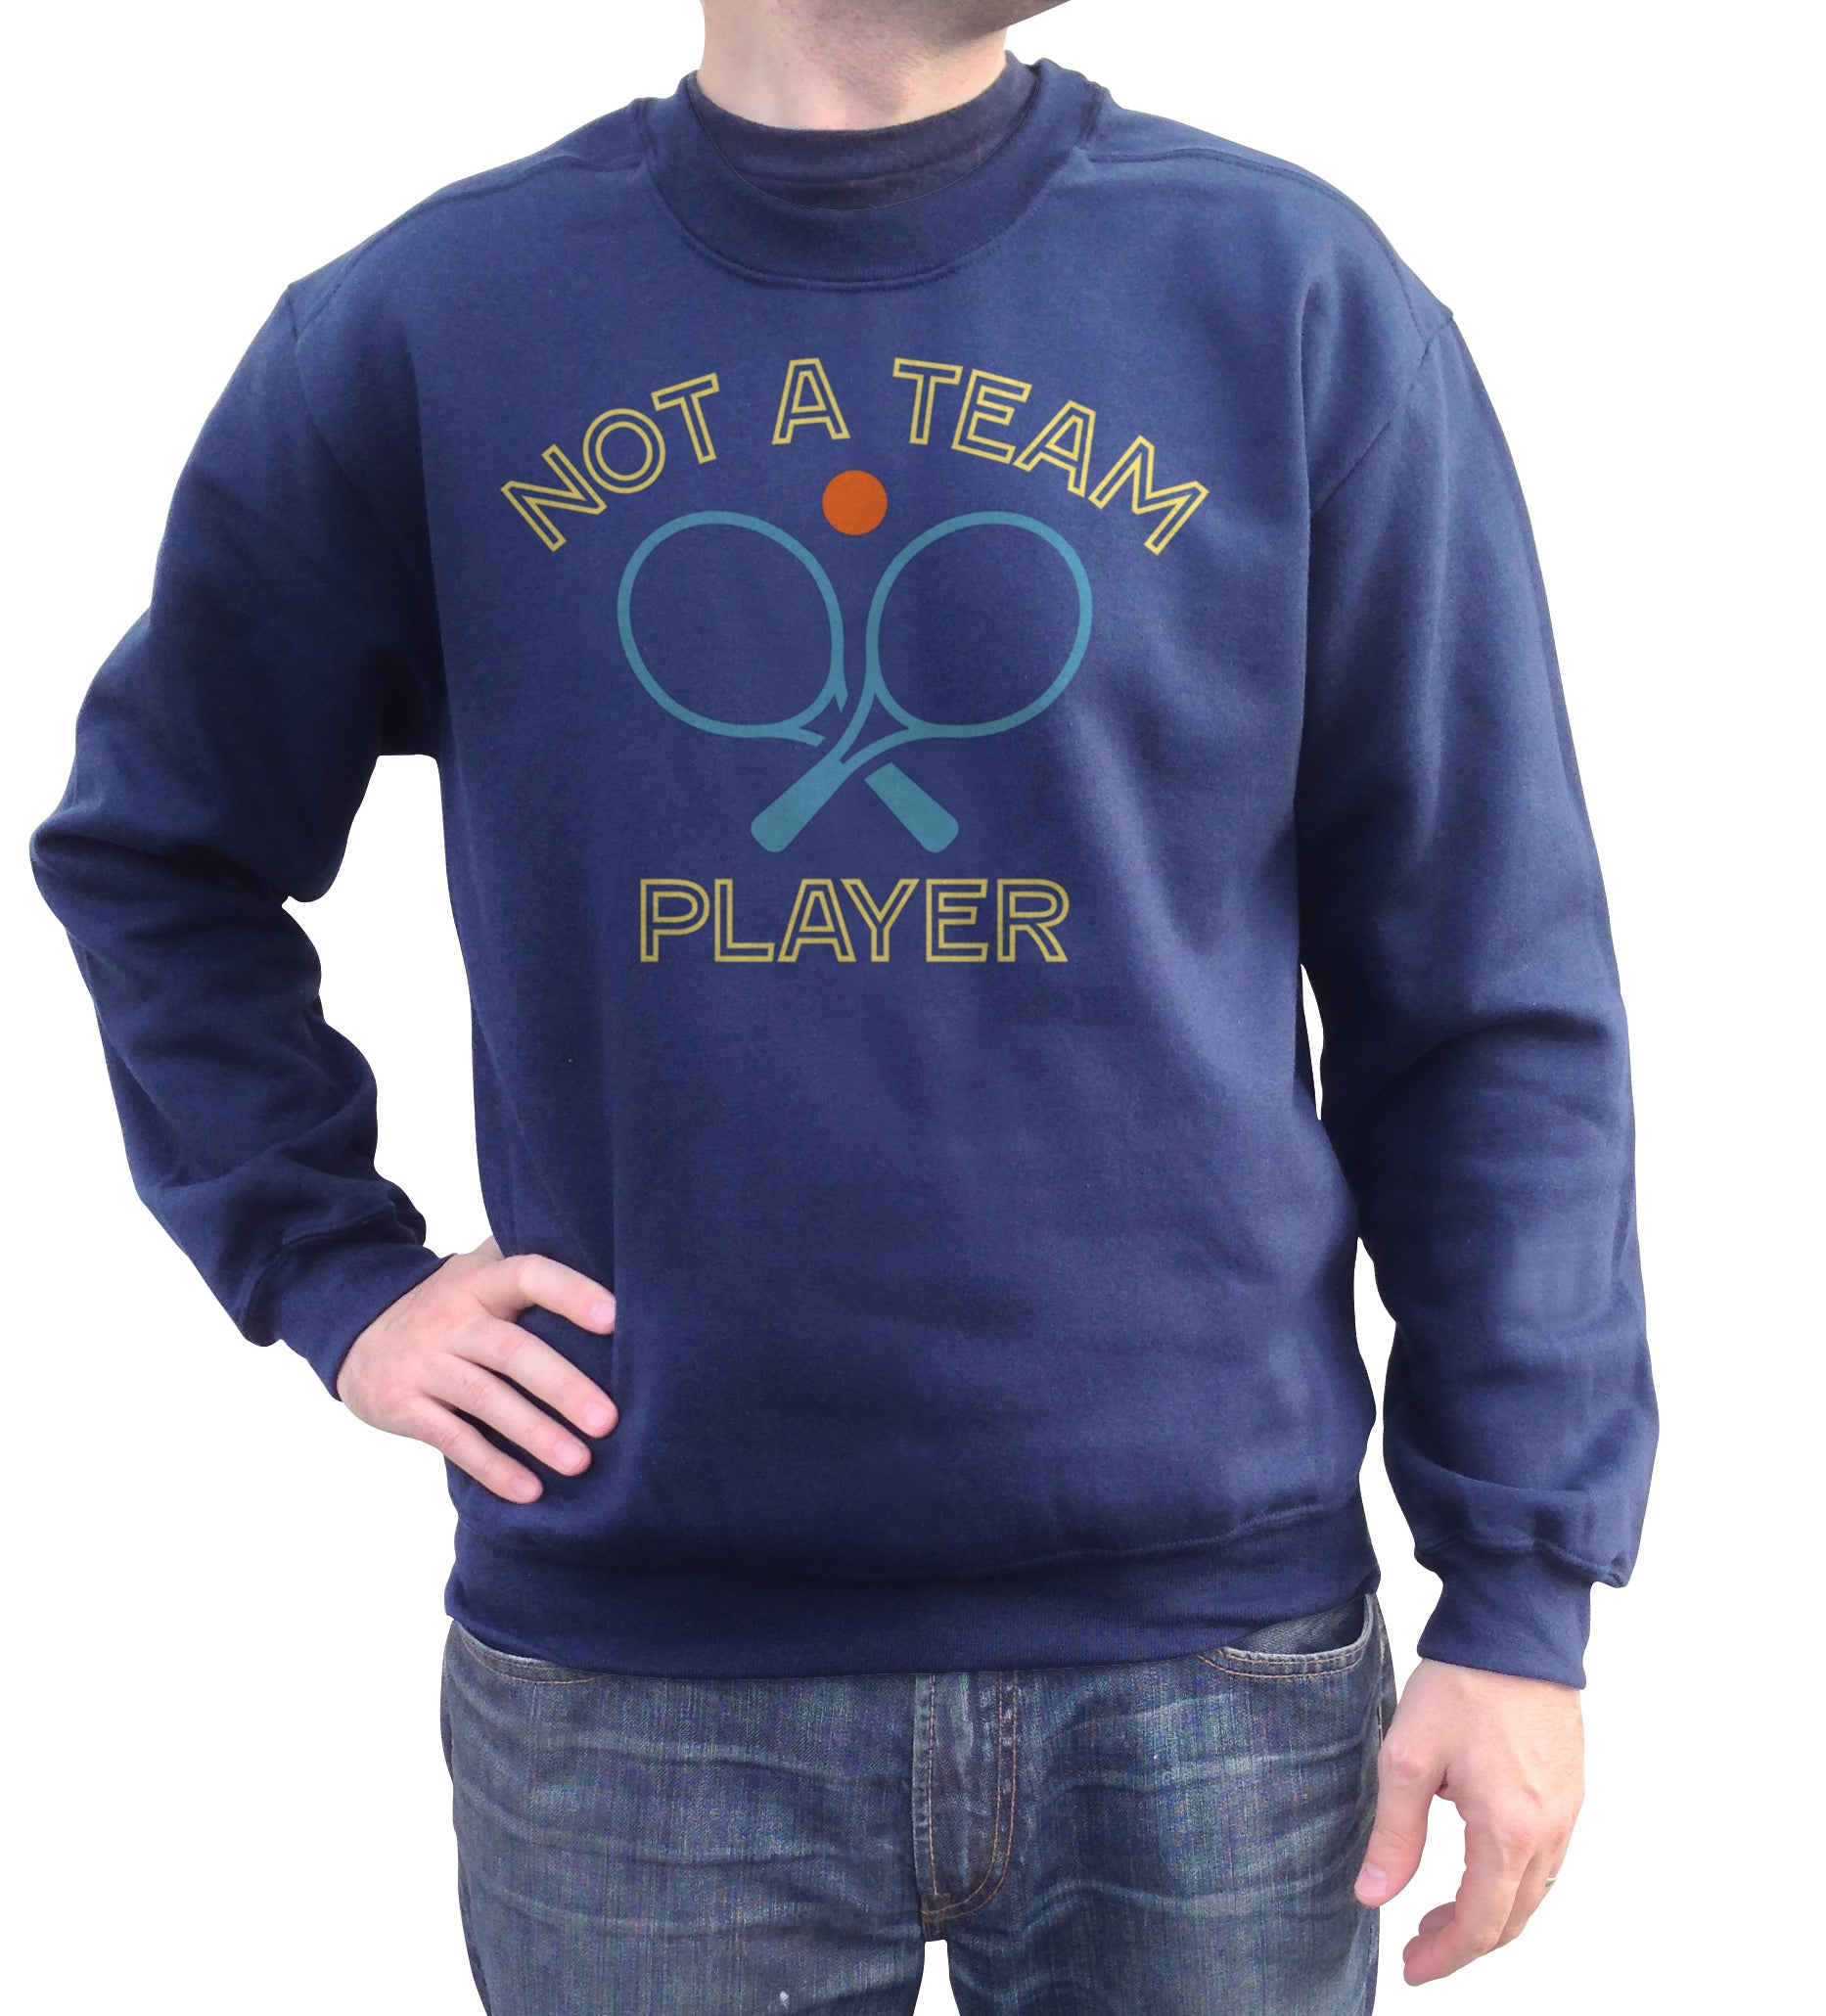 Unisex Not a Team Player Sweatshirt